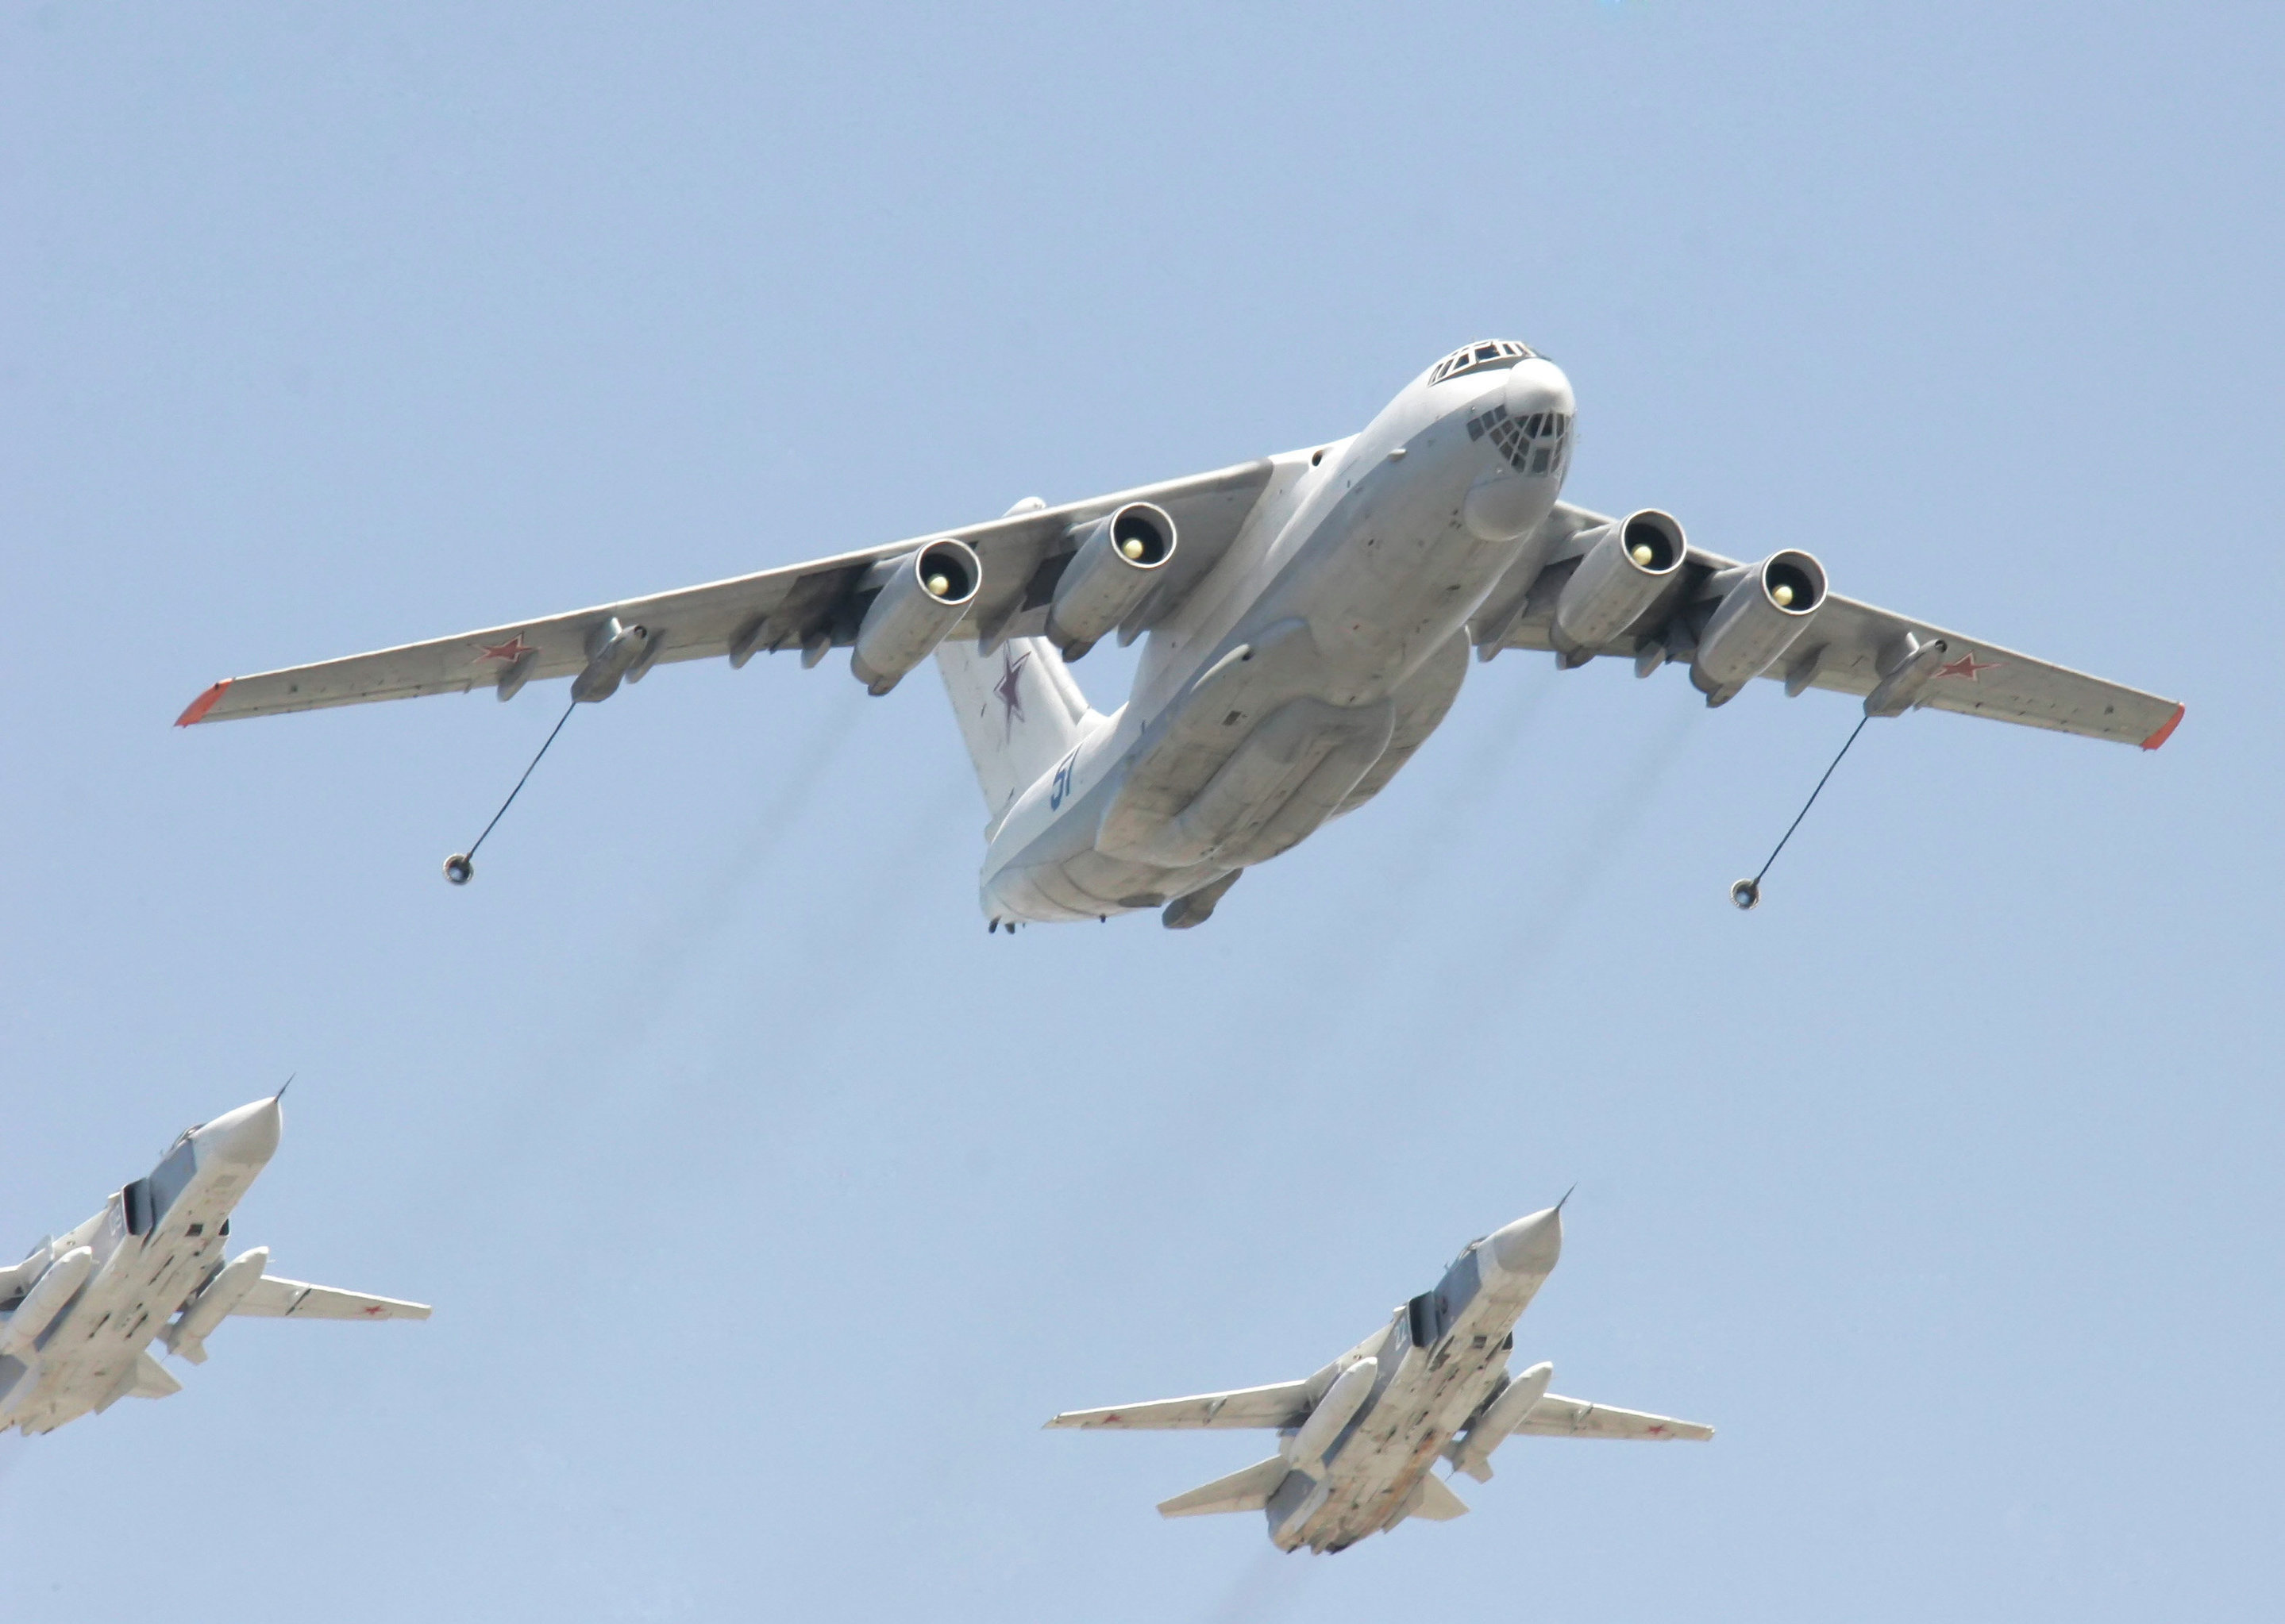 An Il-78 tanker aircraft and Su-24 fighter-bombers.